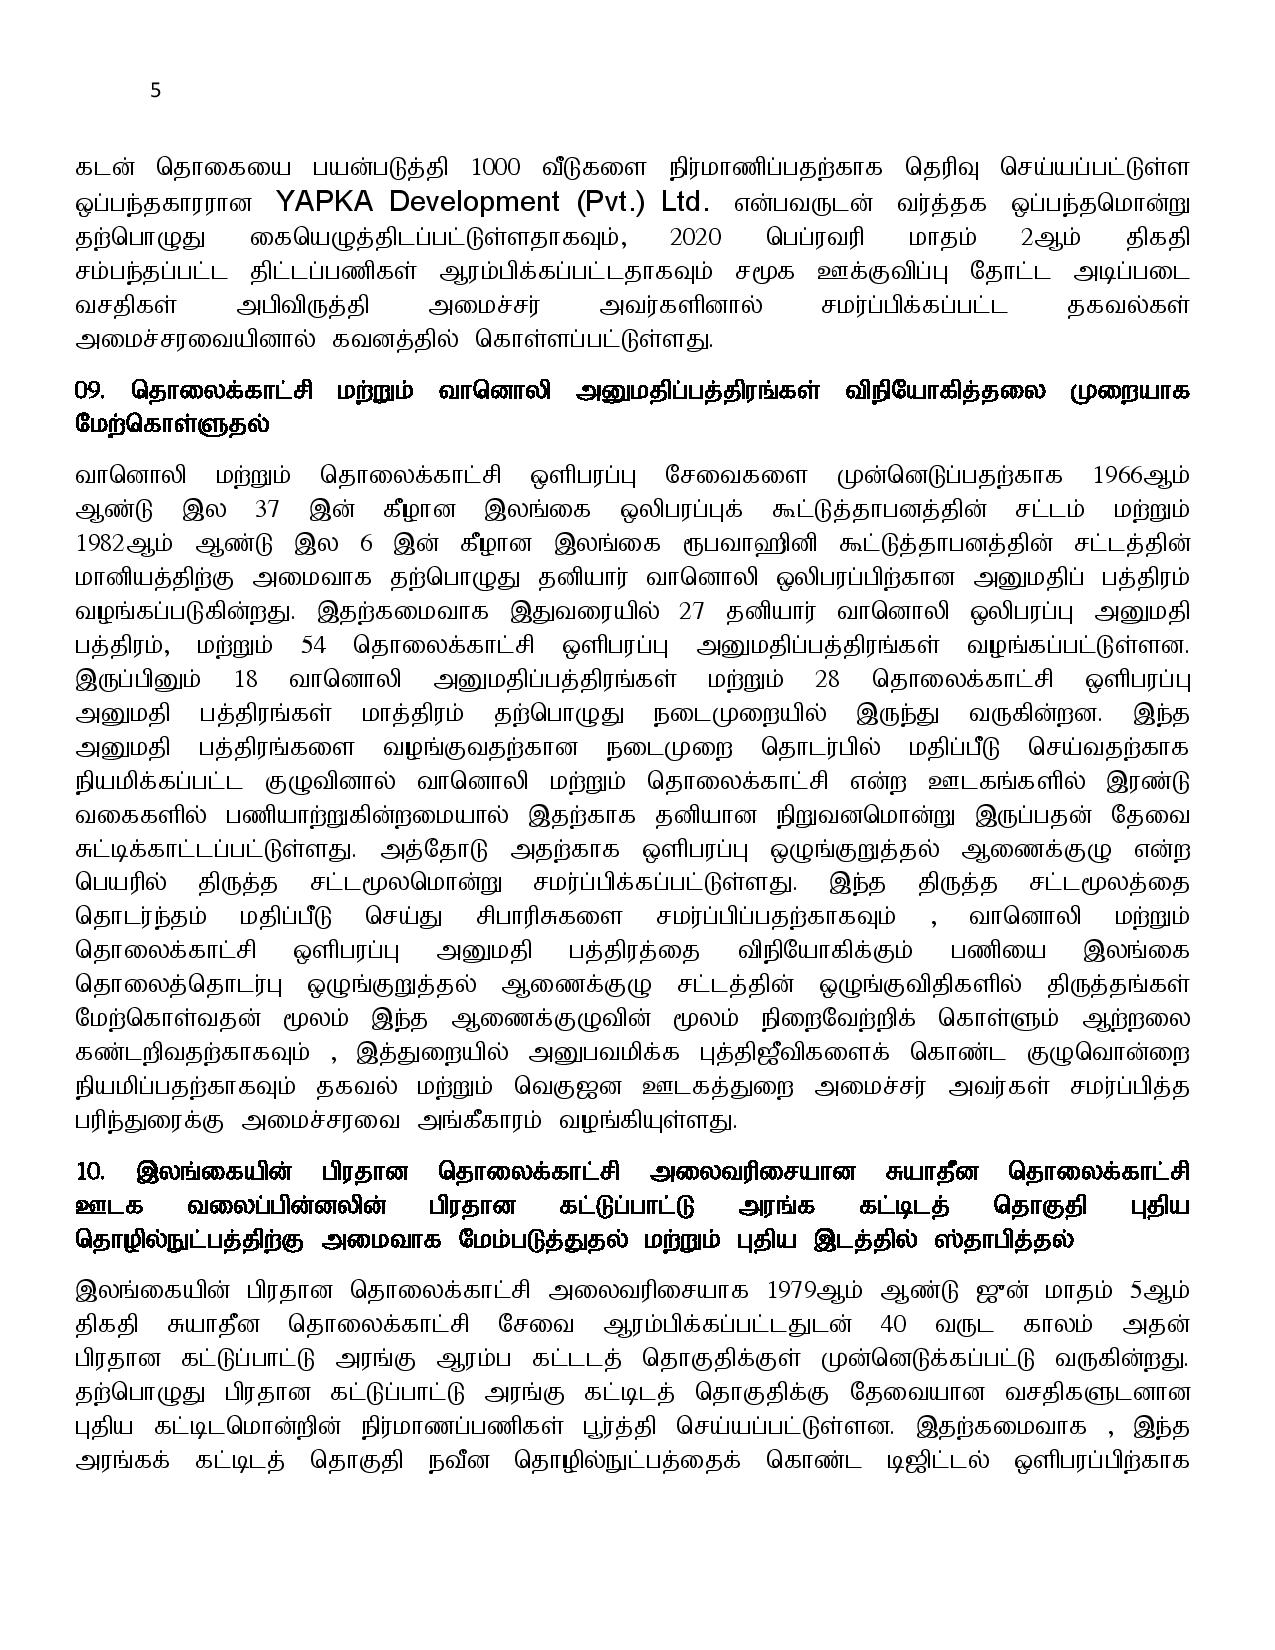 04.03.2020 cabinet Tamil page 005